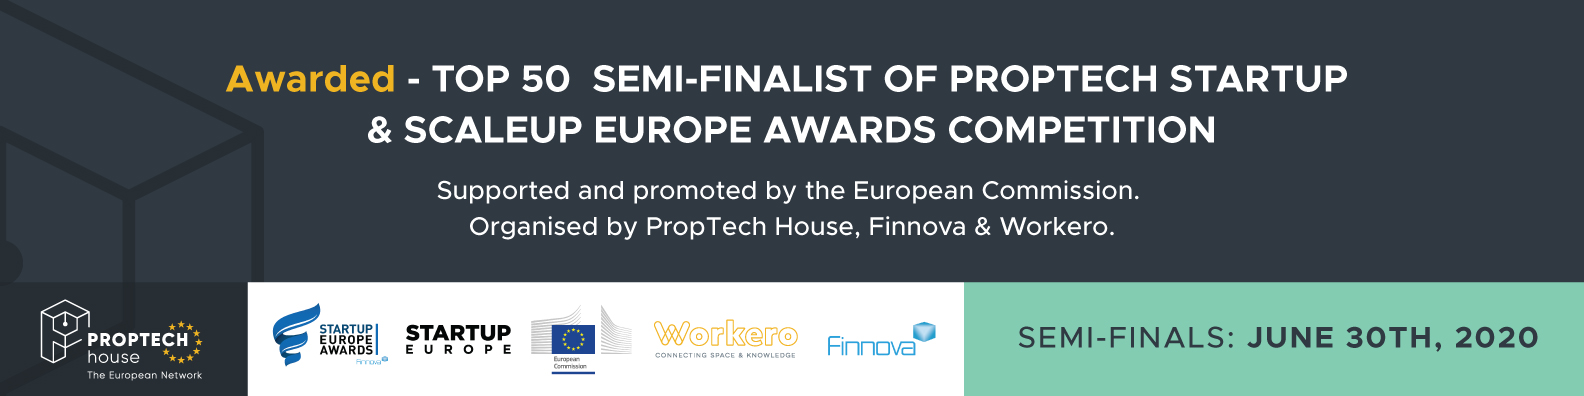 Semi-finals of the Proptech Start-up Europe Awards 2020